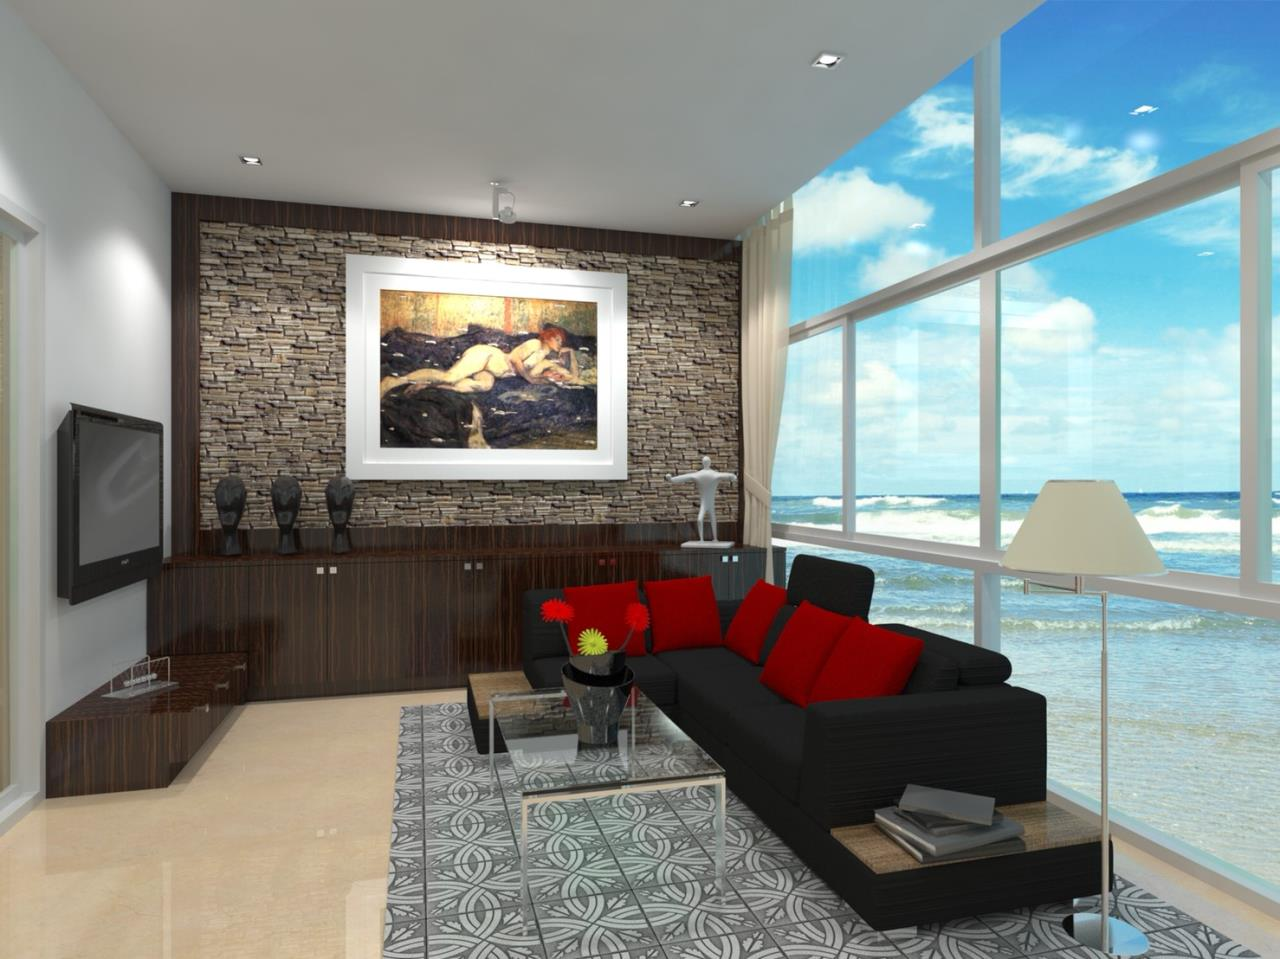 Signature Realty ( Thailand ) Co Ltd Agency's Furnished 1bedroom 46 sq.m condo with jacuzzi floor 2-10 at The Grand Jomtein Beach Pattaya 28